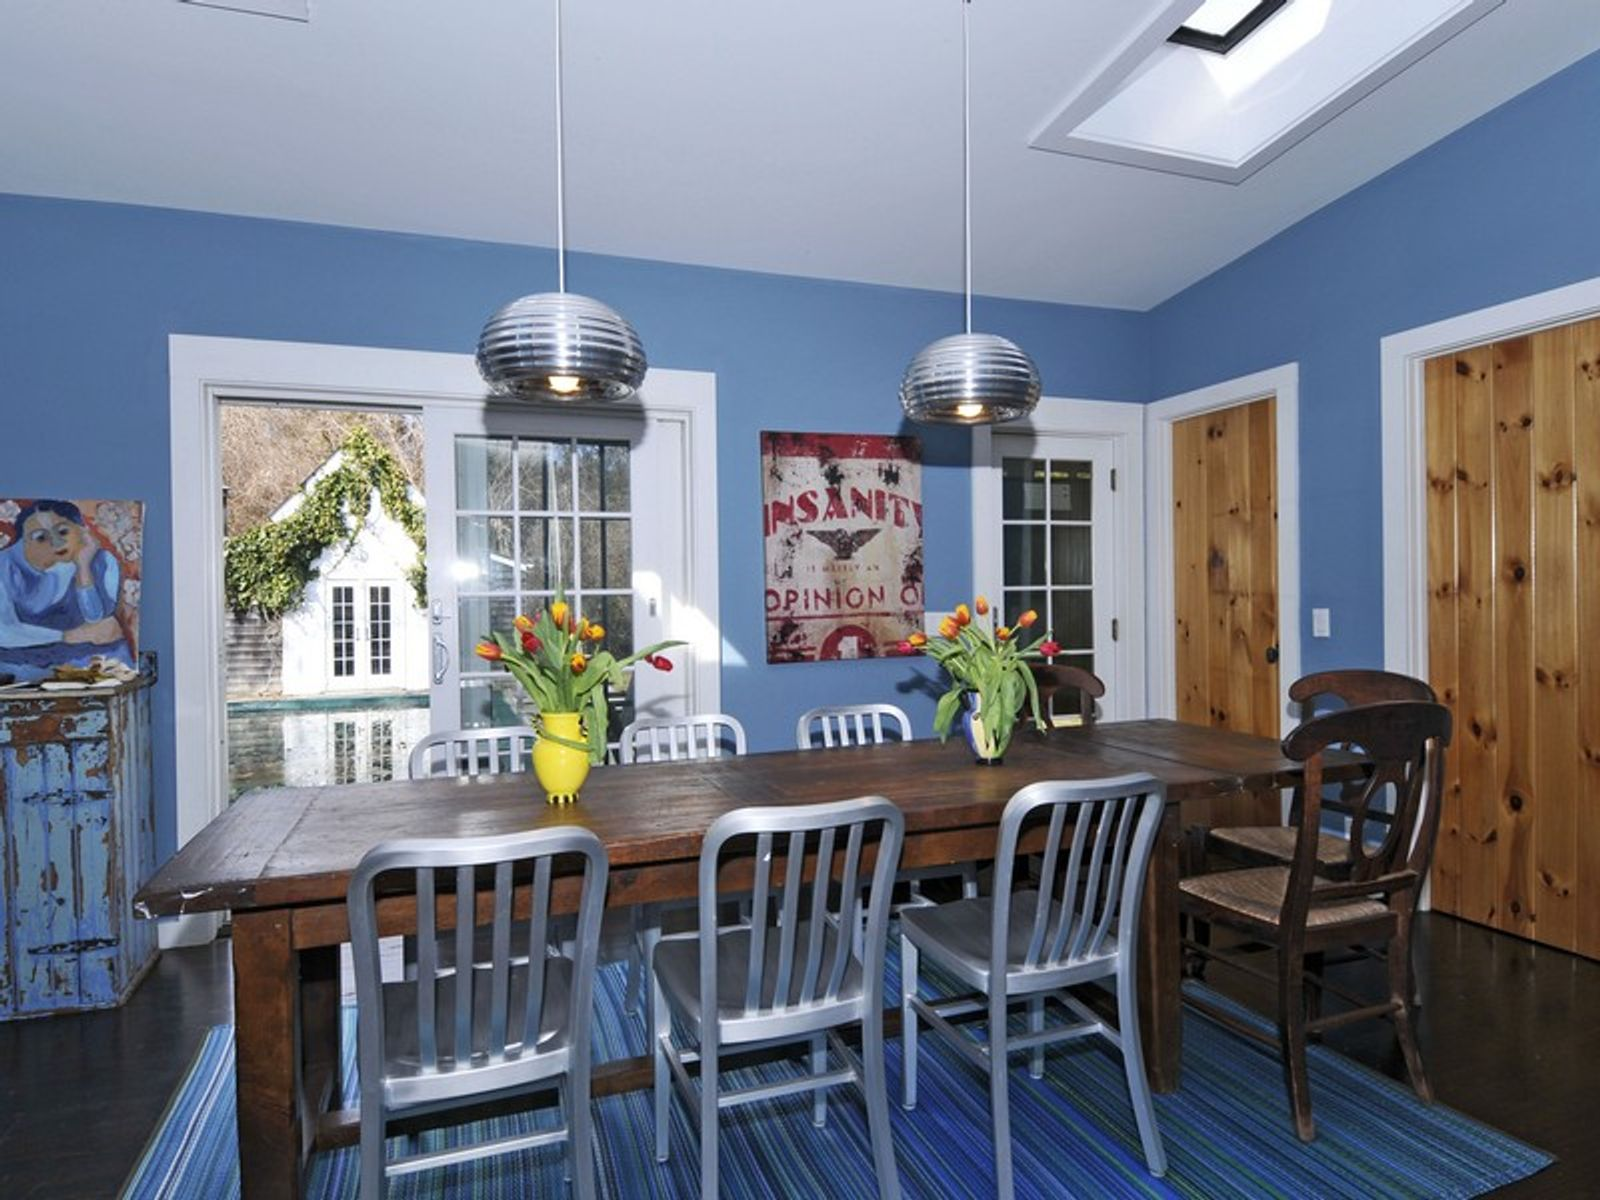 Traditional with Contemporary Pizzazz